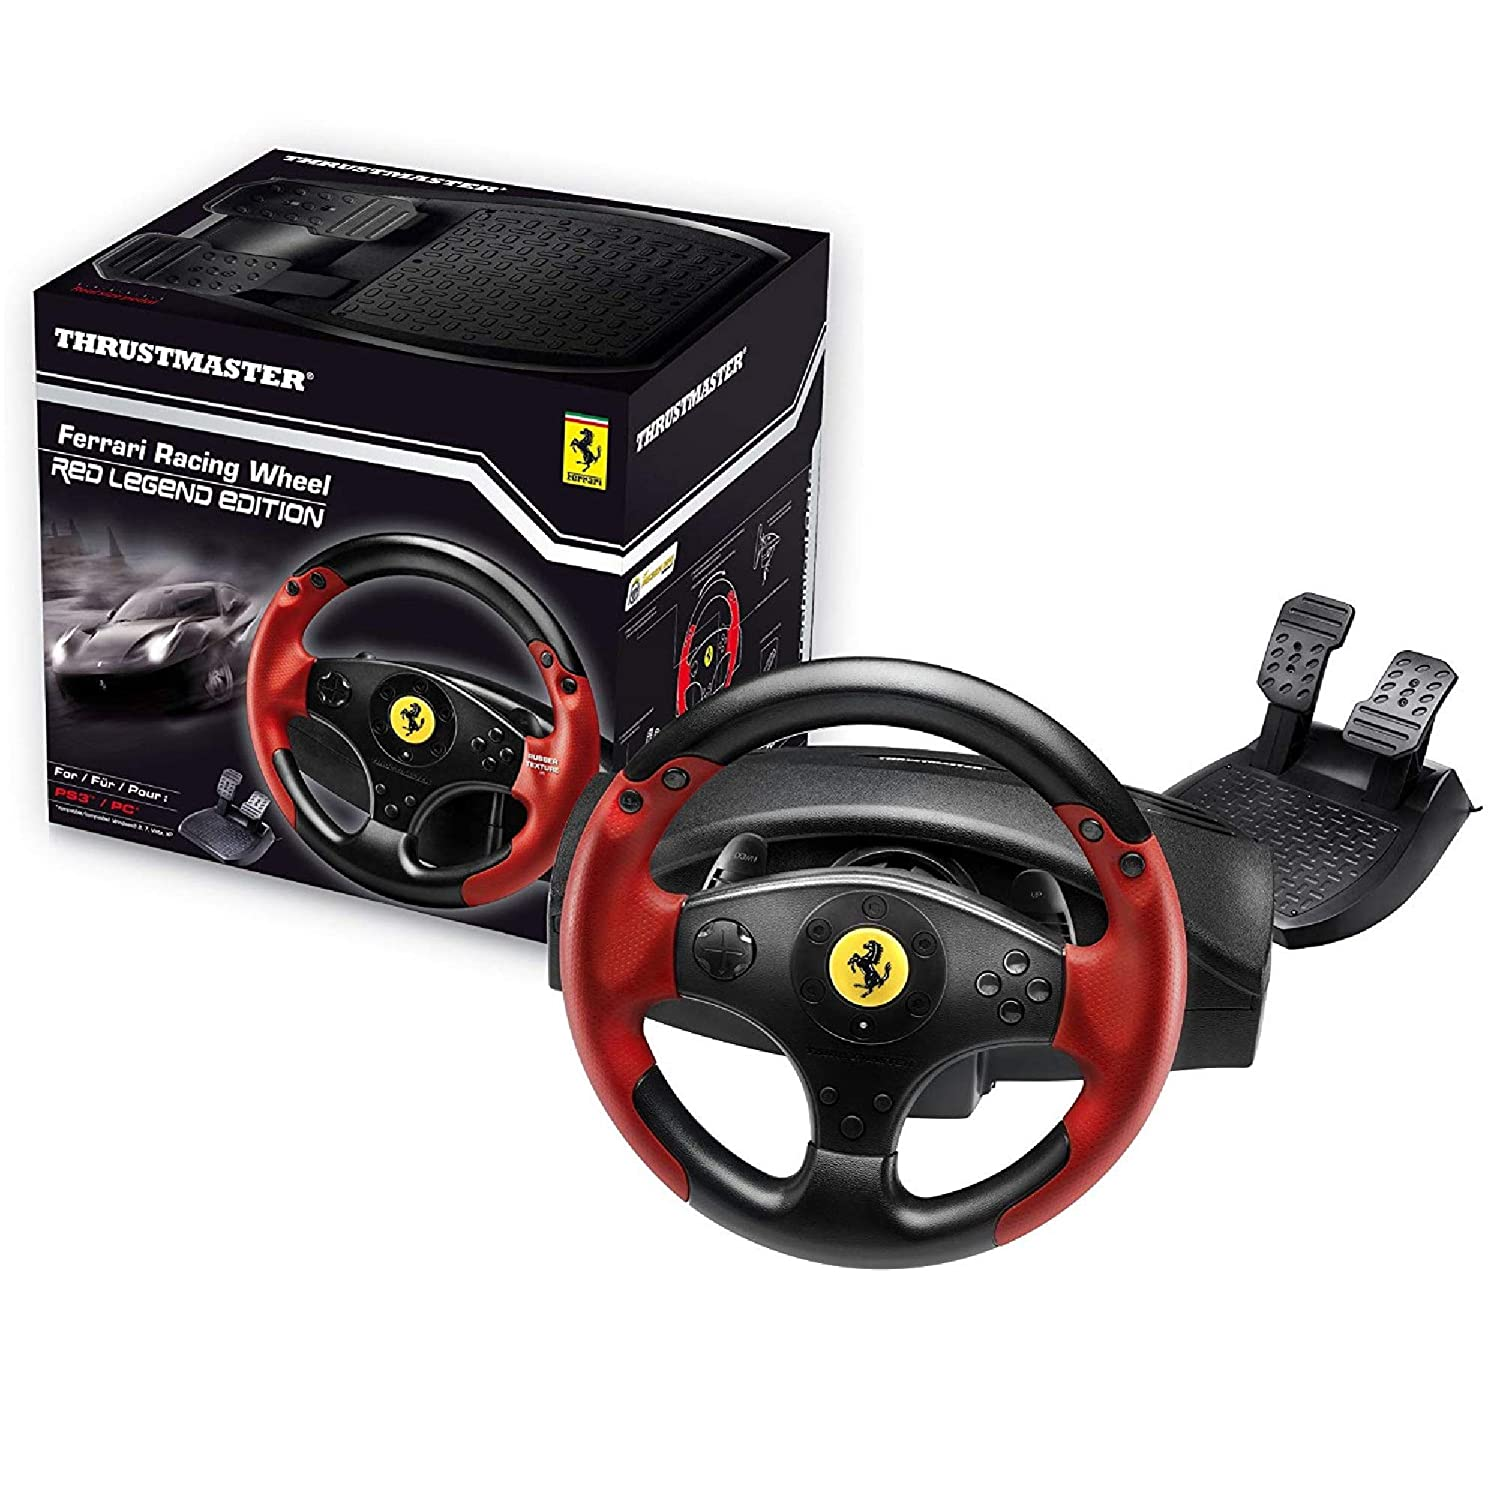 Thrustmaster Ferrari Racing Wheel Red Legend Edition (PC DVD